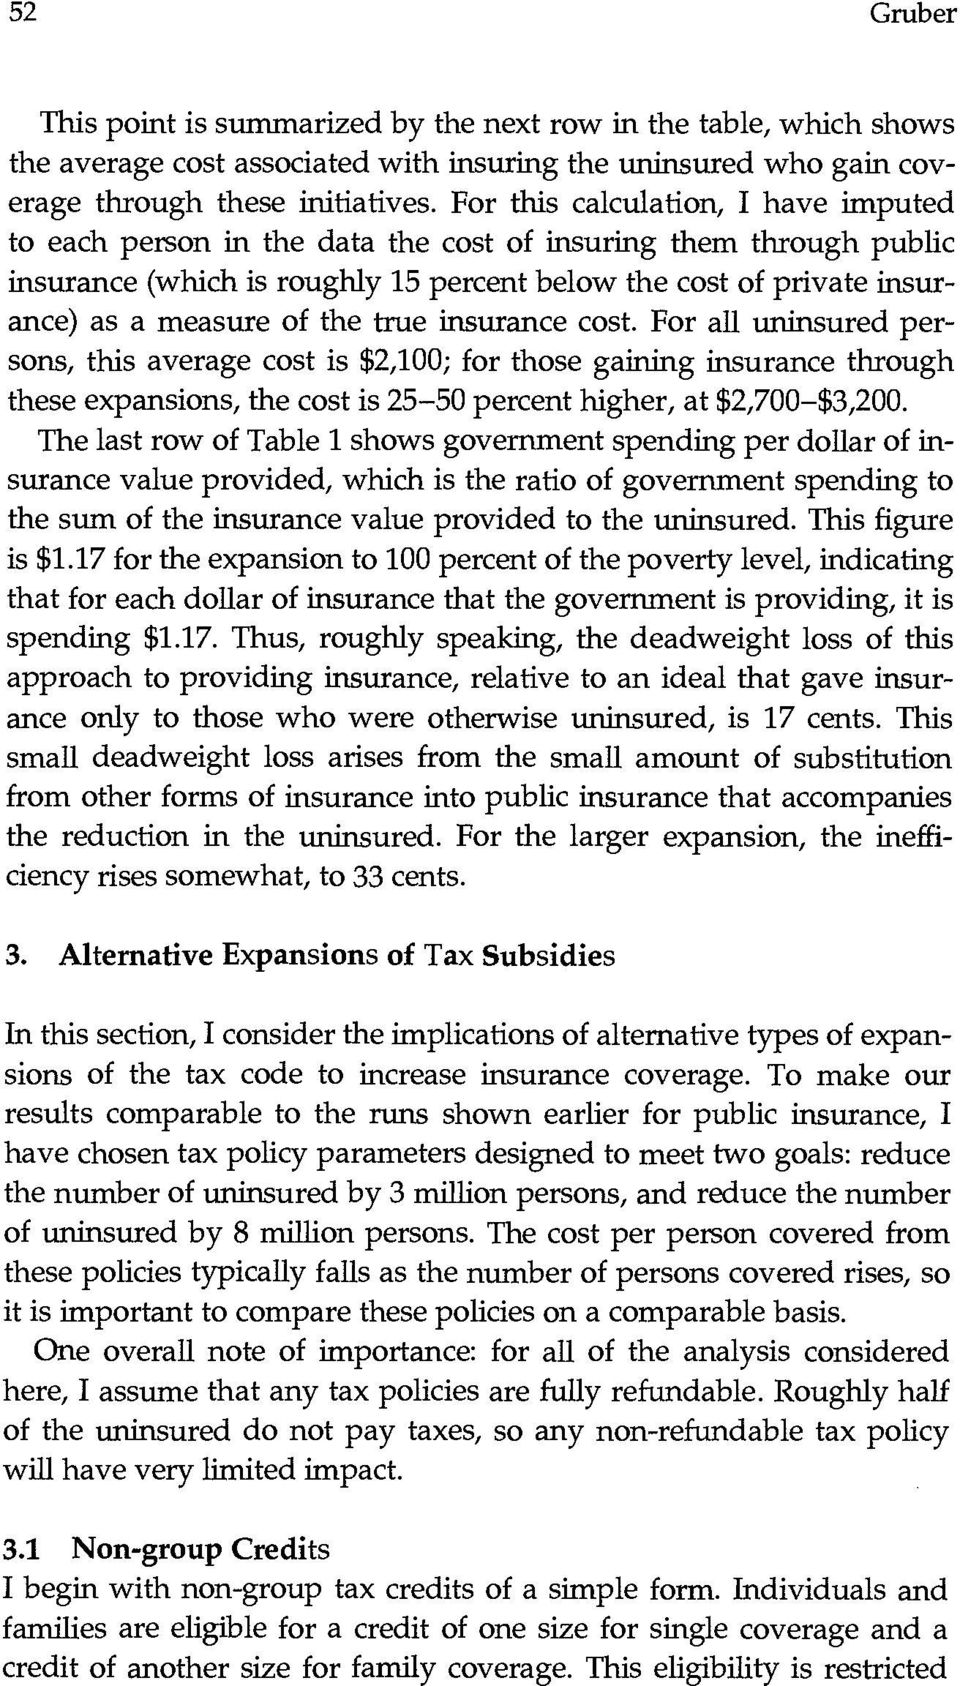 the true insurance cost. For all uninsured persons, this average cost is $2,100; for those gaining insurance through these expansions, the cost is 25-50 percent higher, at $2,700$3,200.